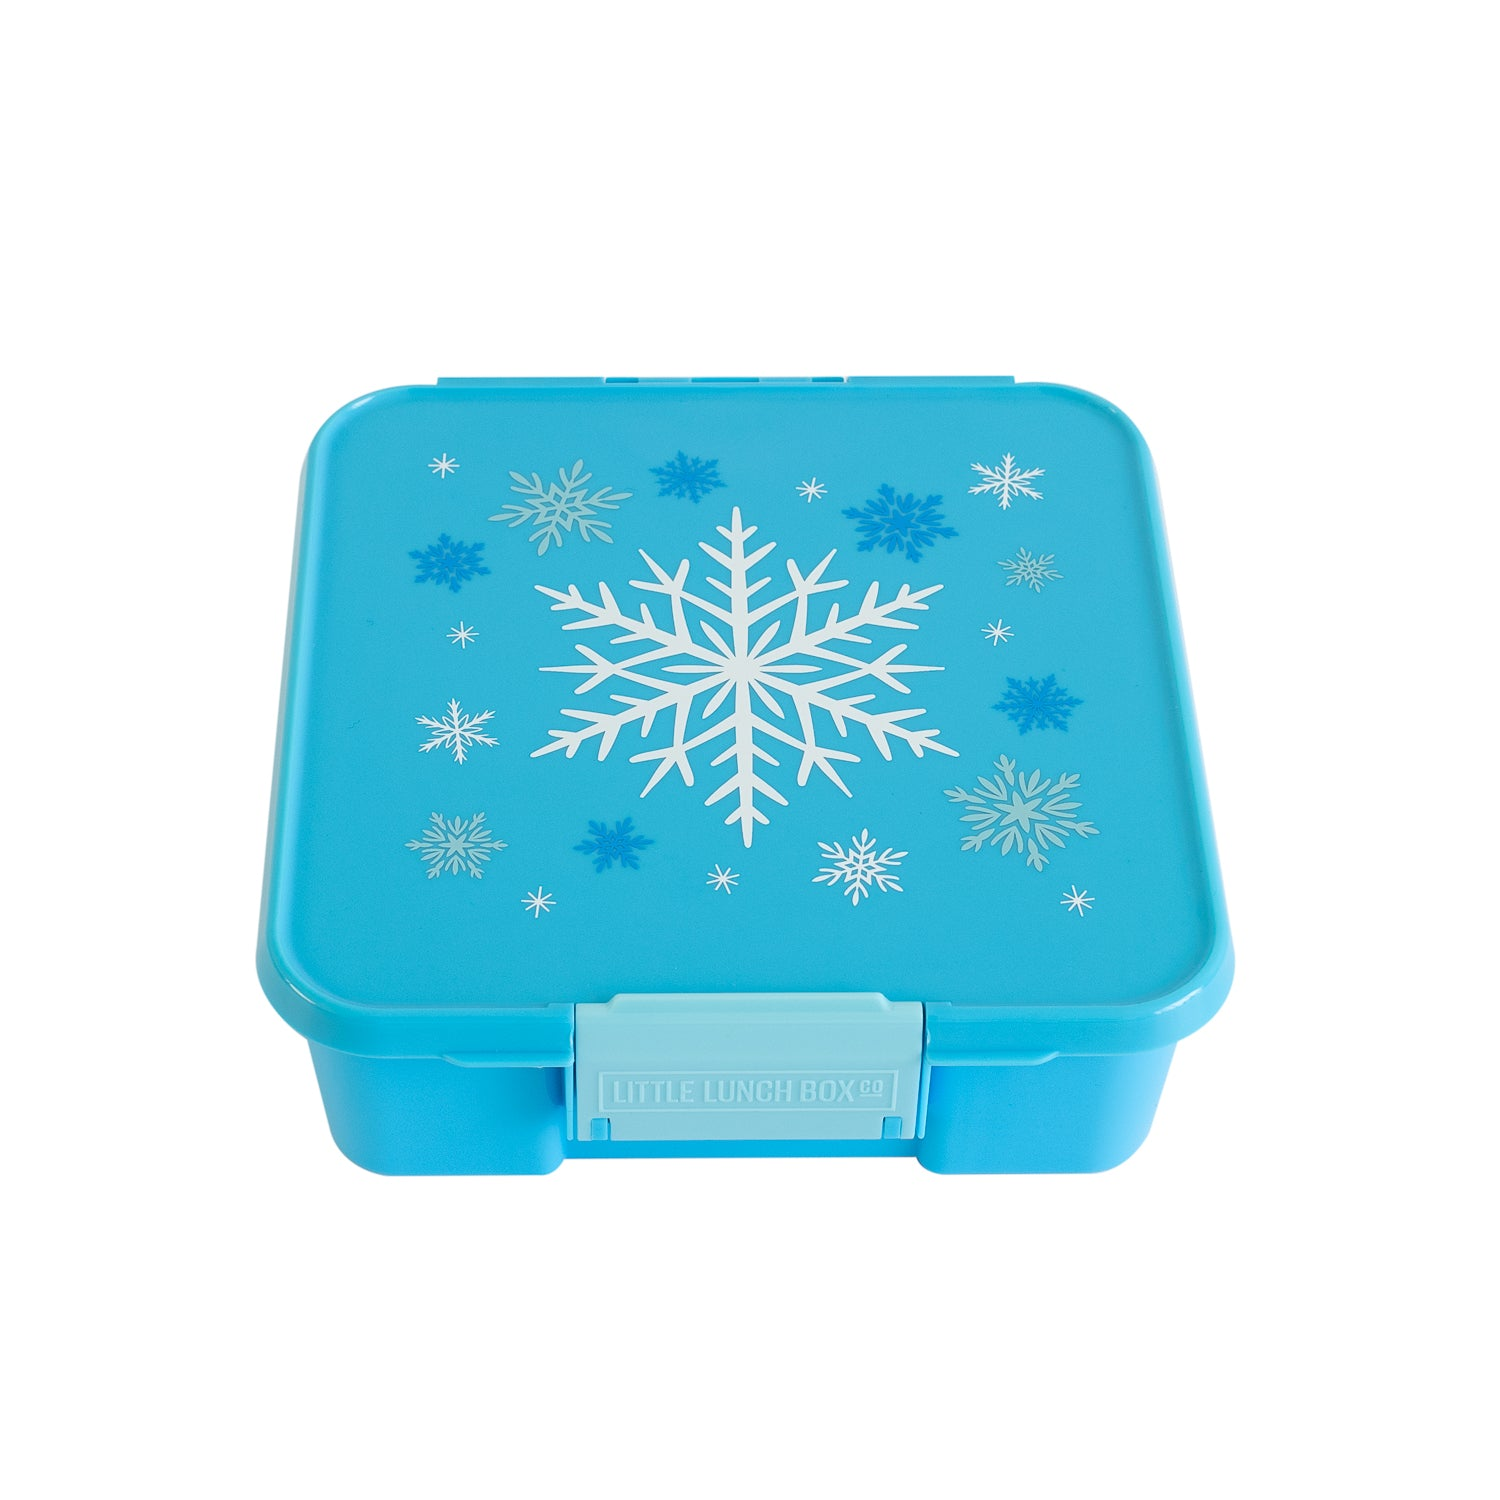 Bento Three -Snowflake-Lunchbox-Lunchbox Mini